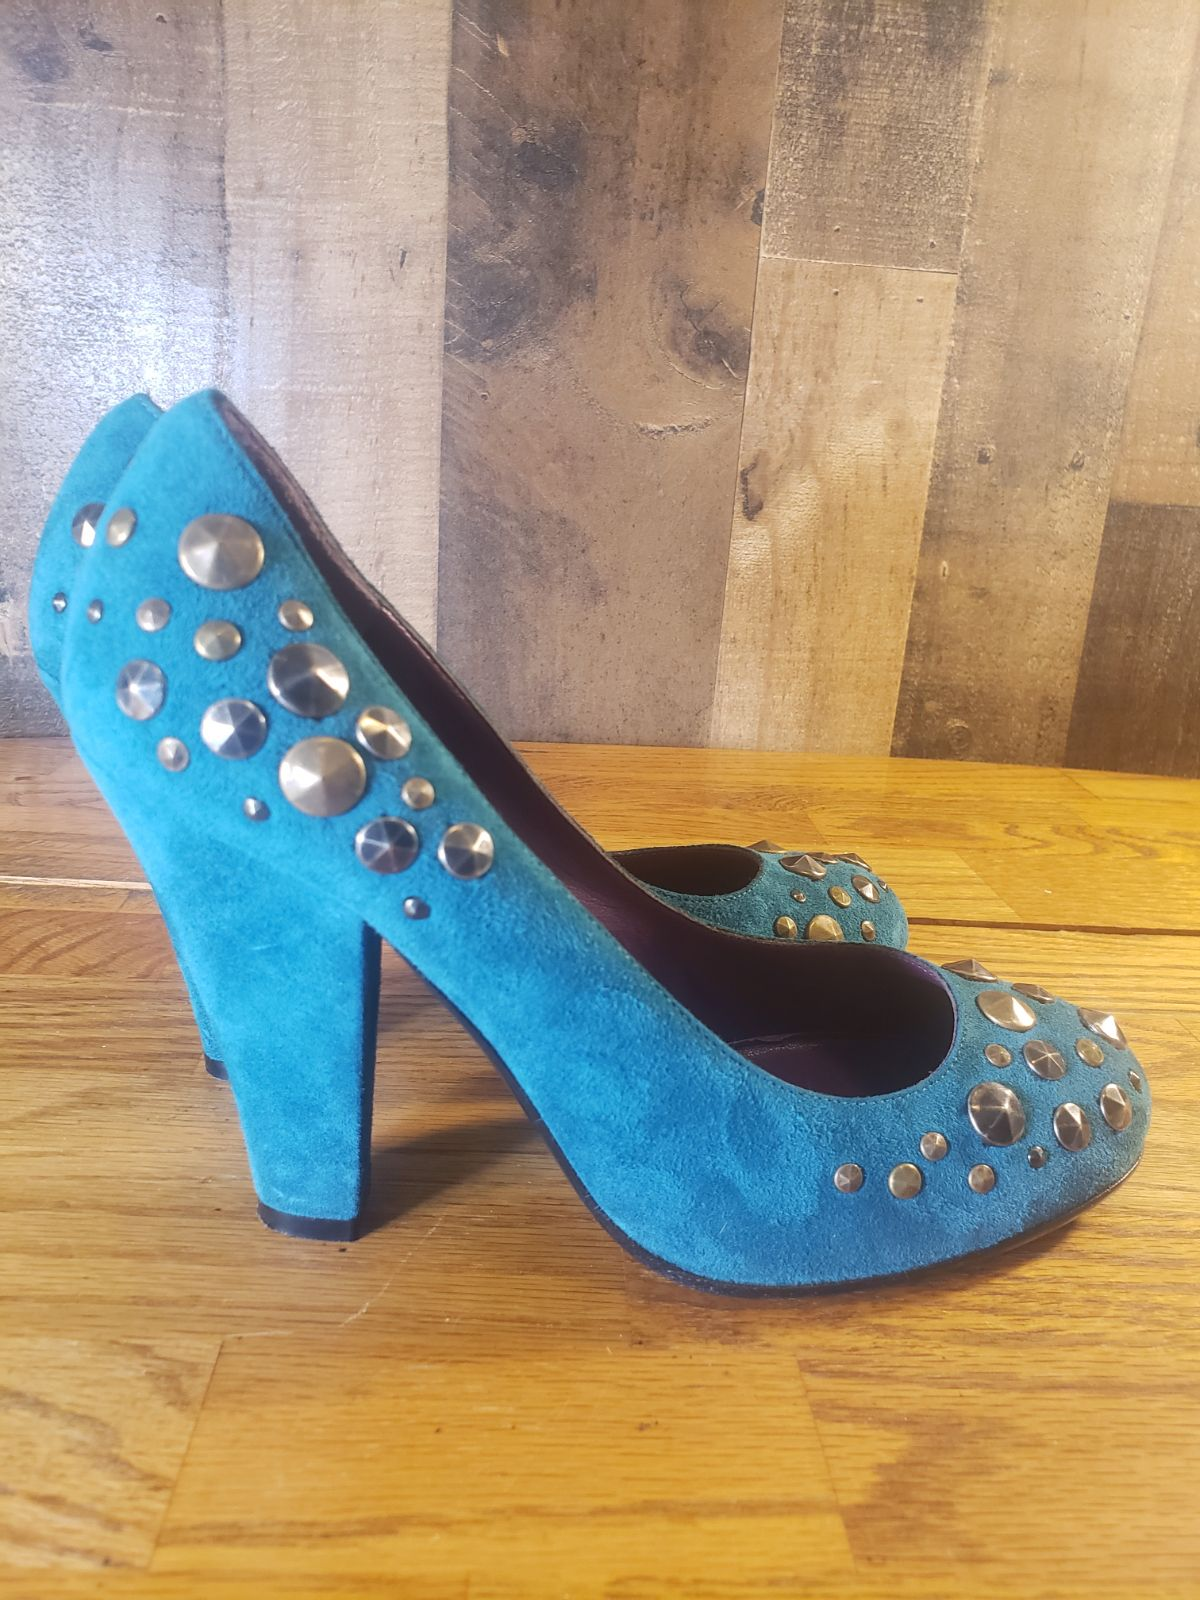 Marc jacobs teal suede studded pump 37.5